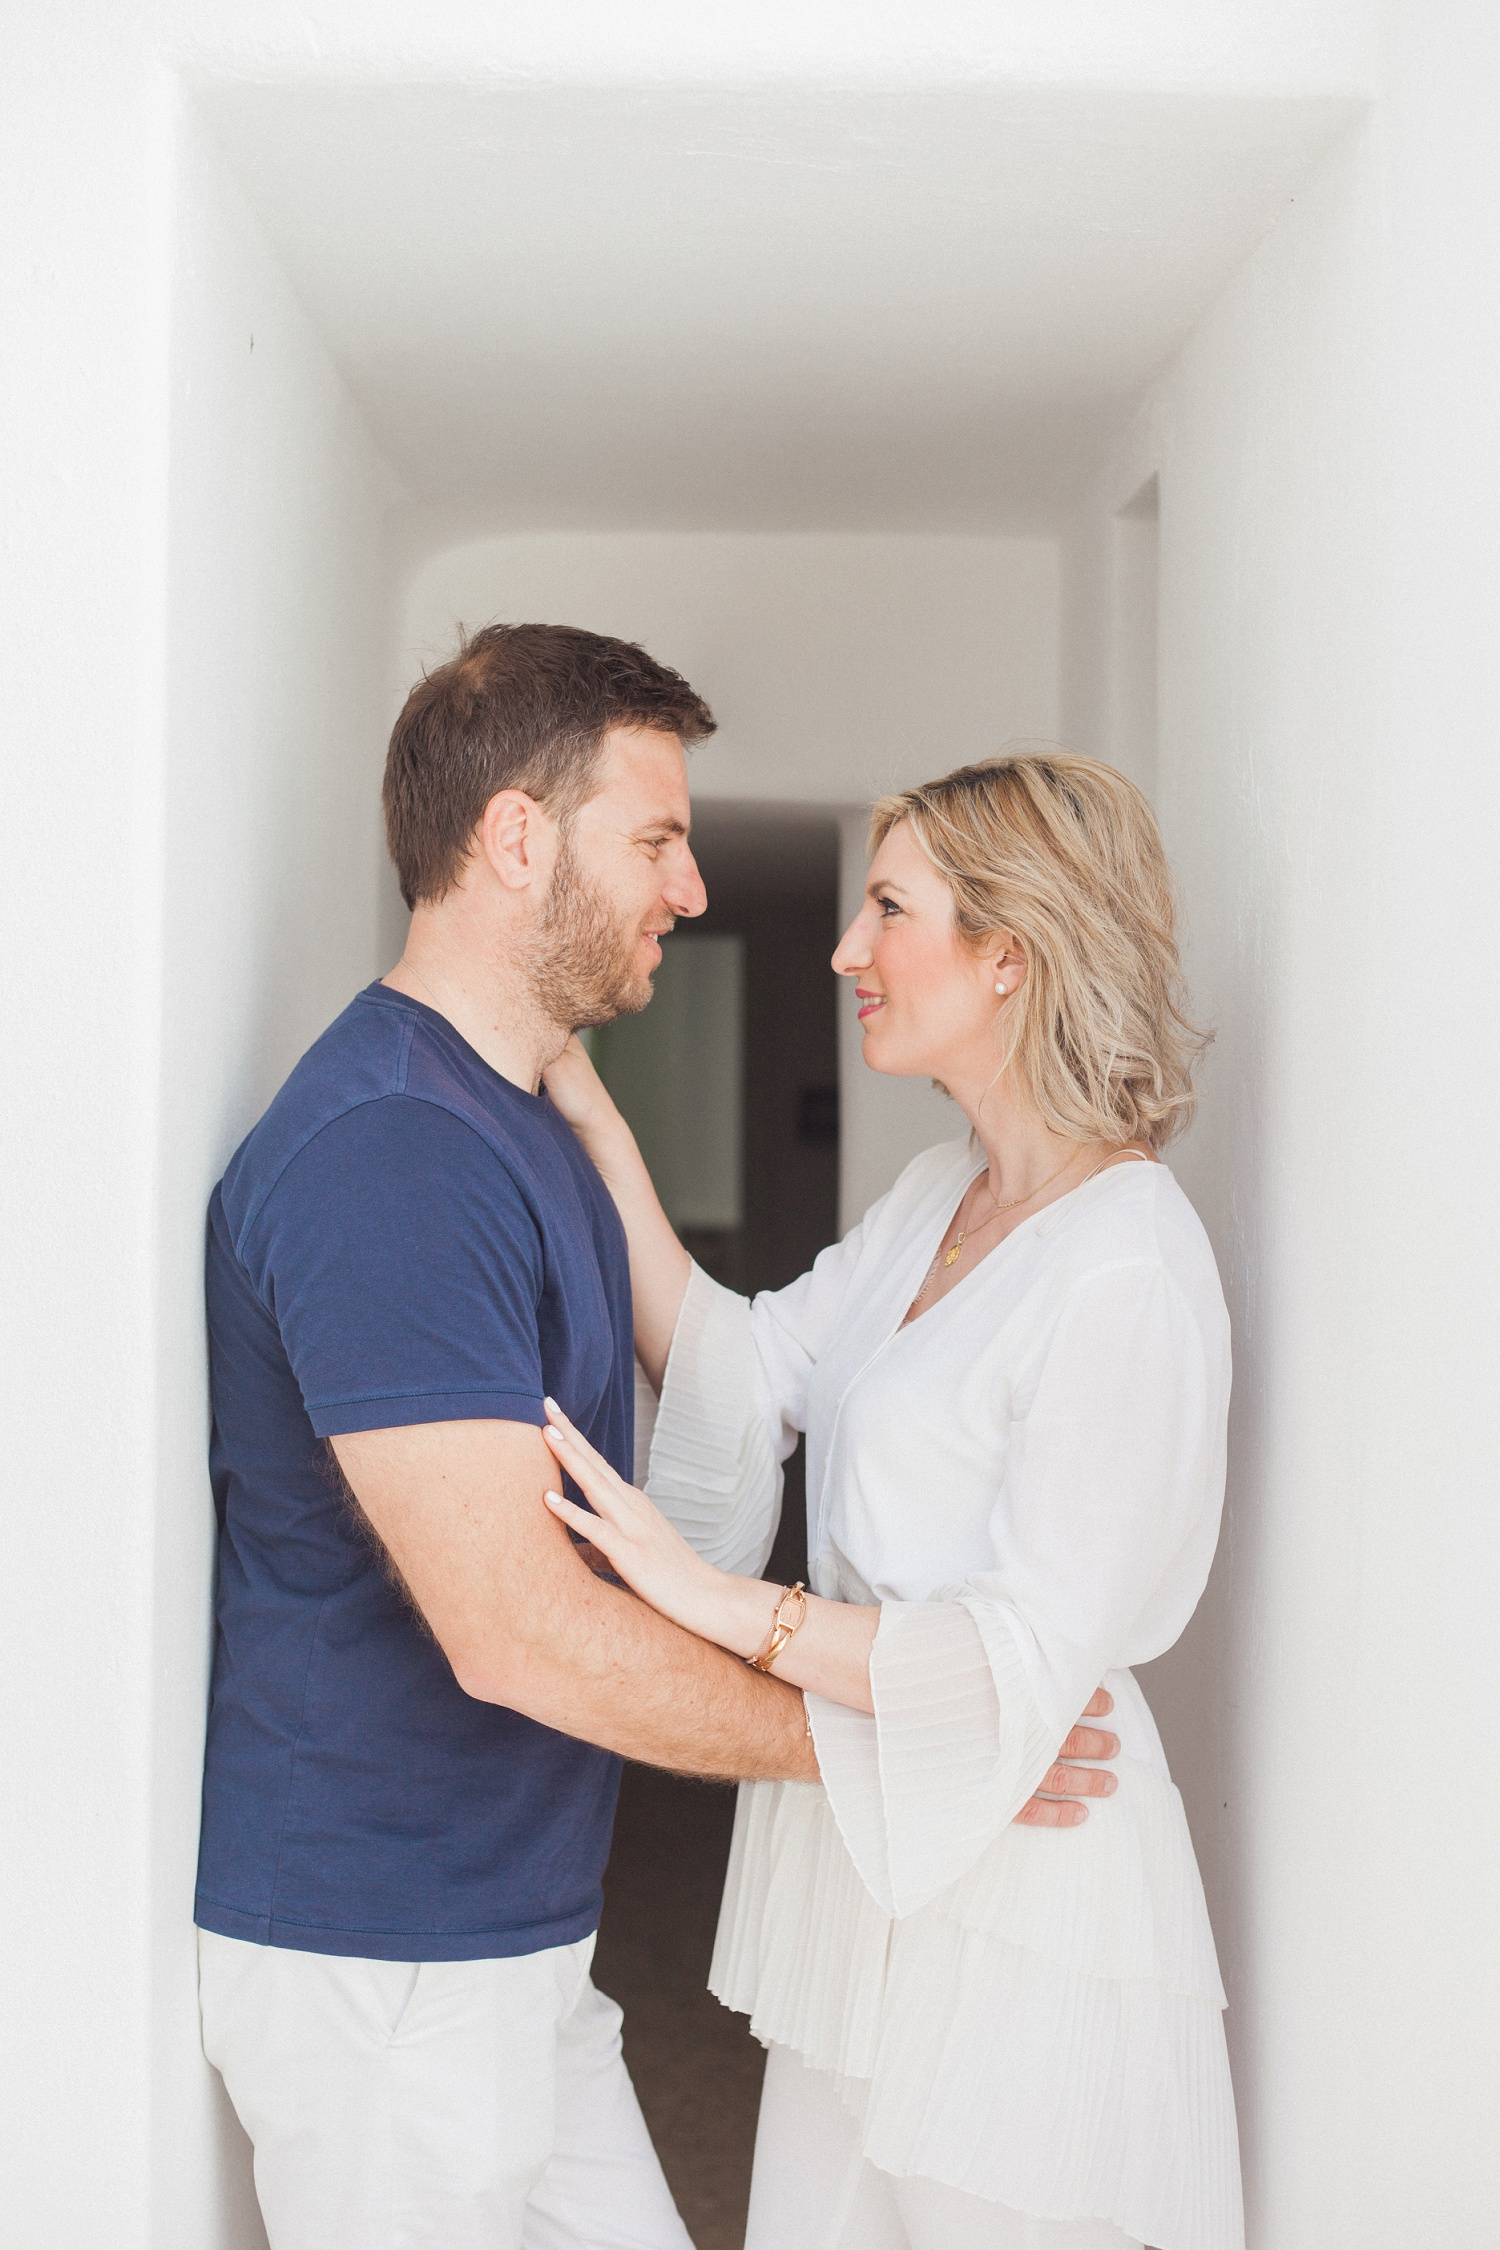 Couple smile at each other in a whitewashed corridor during their shoot at Artemoulas Studios Mykonos